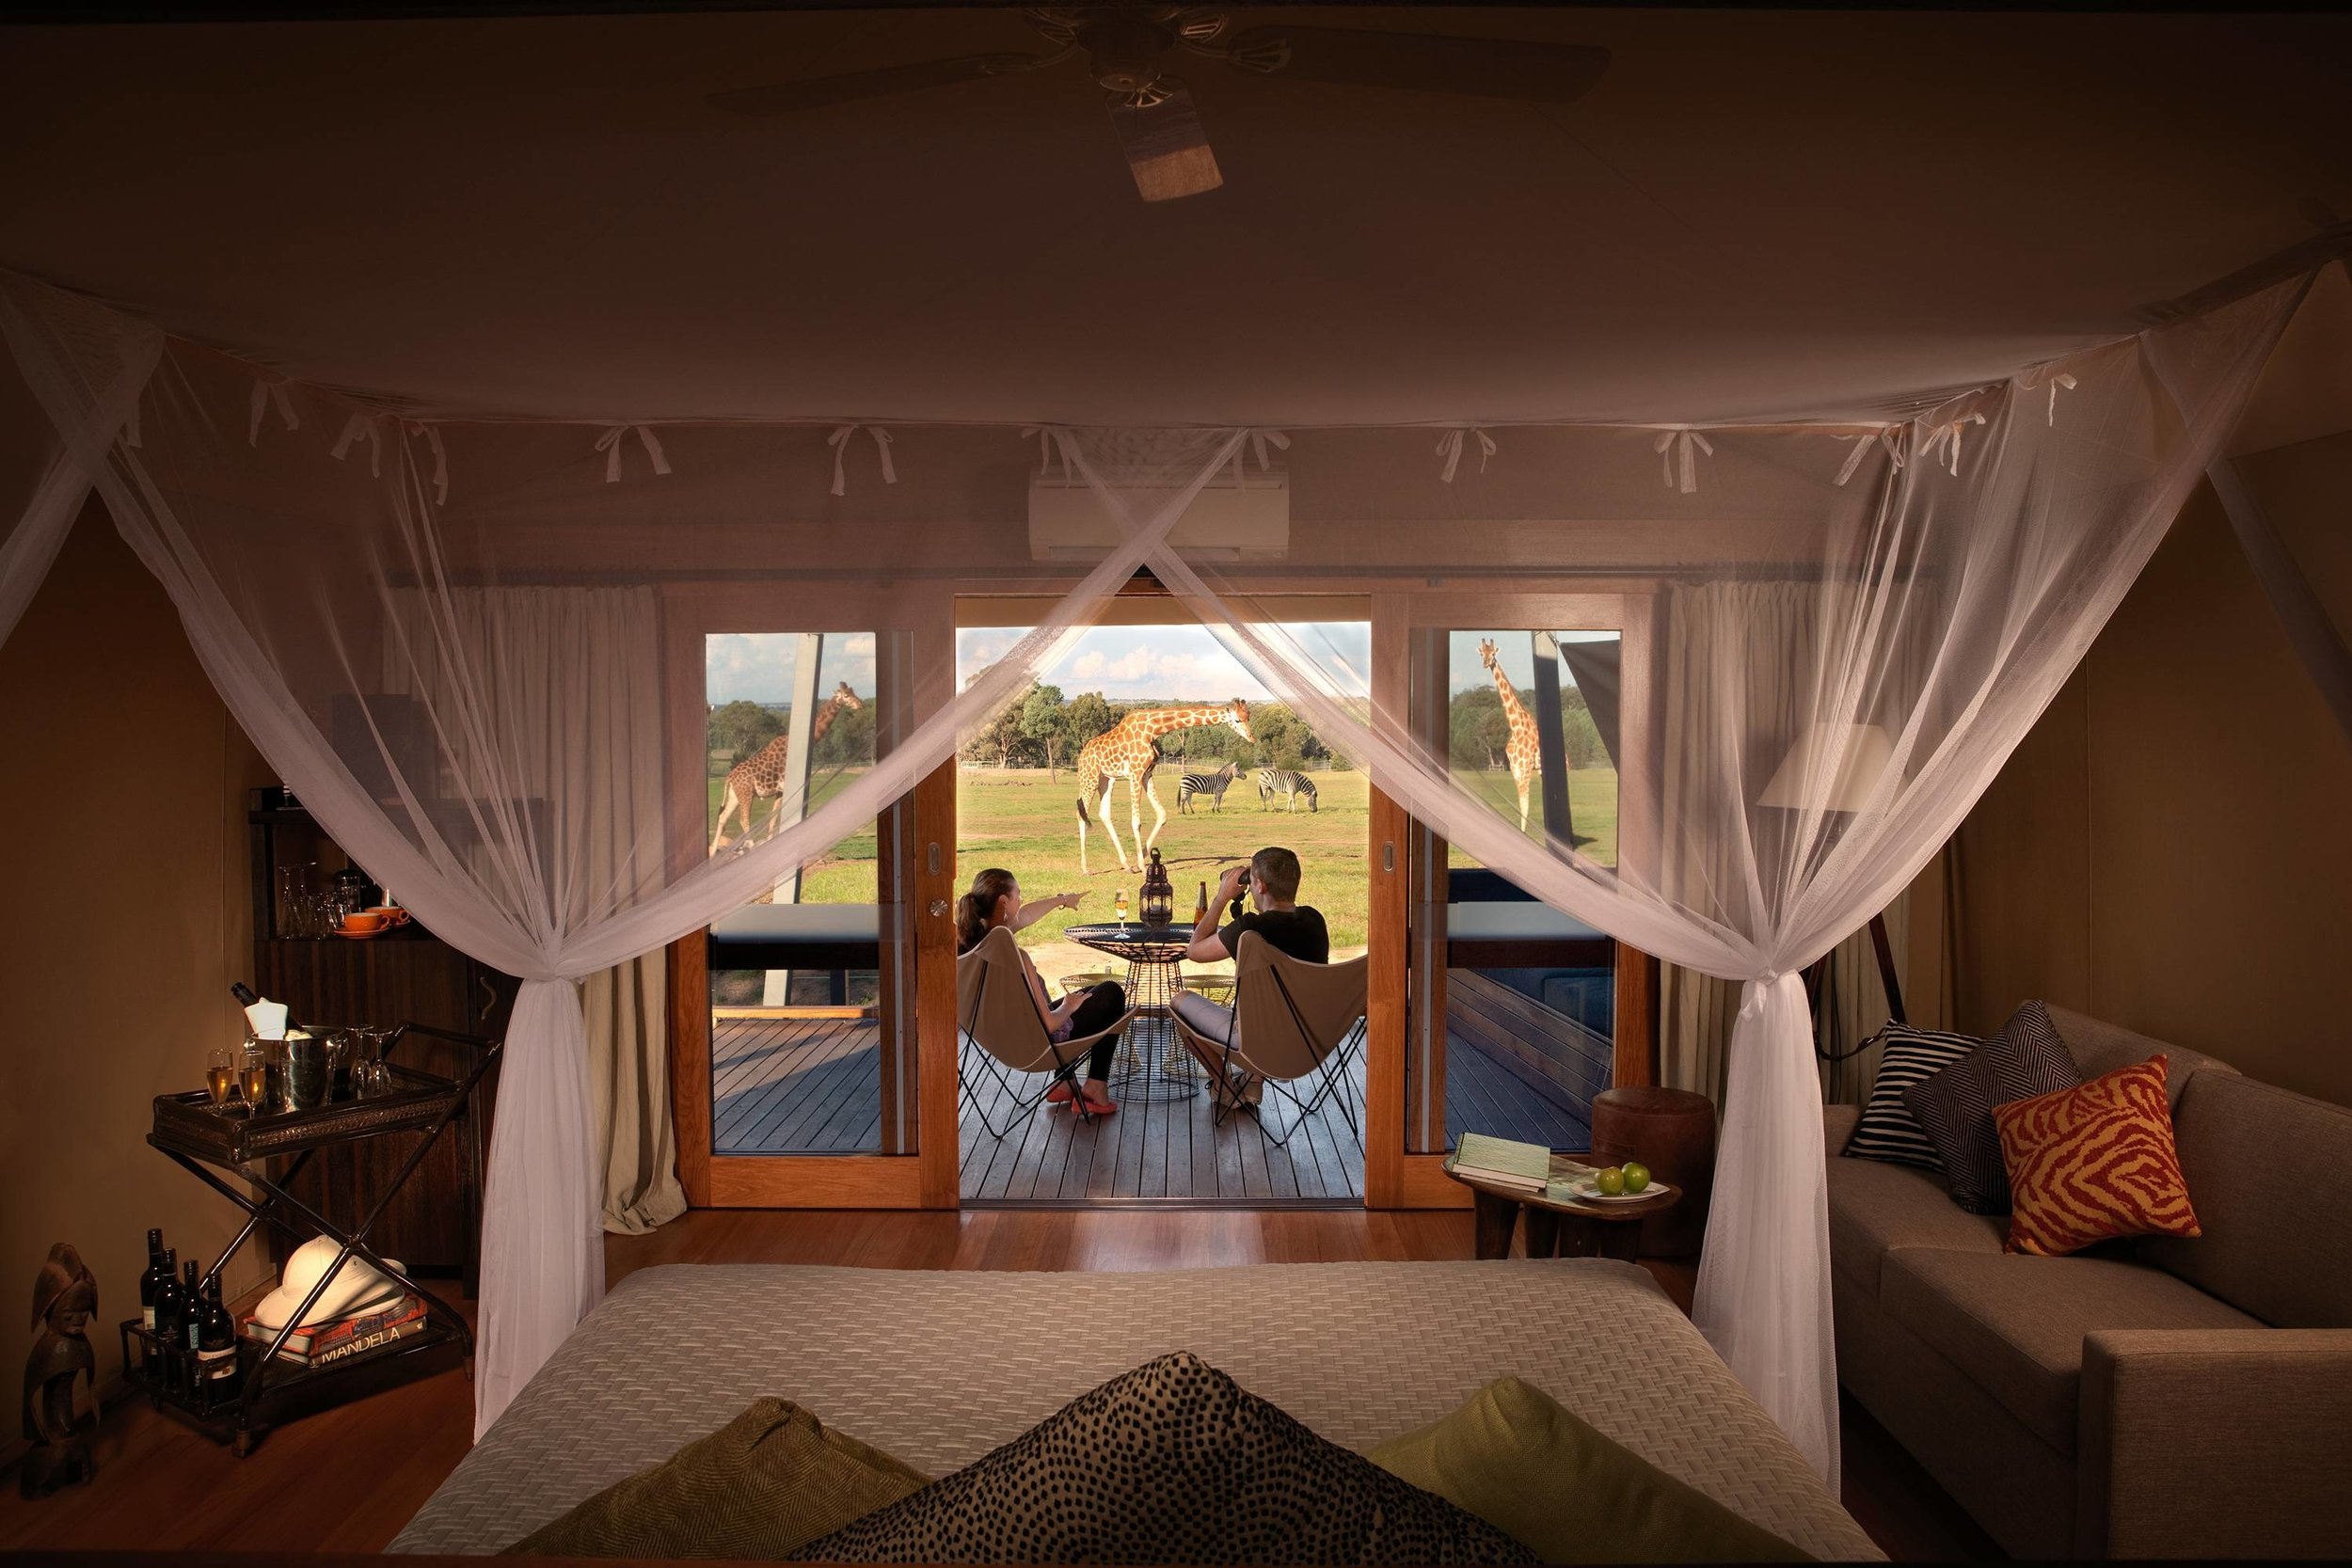 Dubbo Zoofari Lodge - Taronga Western Plains Zoo 1 nights accommodation, return airfares, bike hire, breakfast and an African inspired banquet dinner.Ex Newcastle or CanberraStarting from $509 per person twin share★★★★★